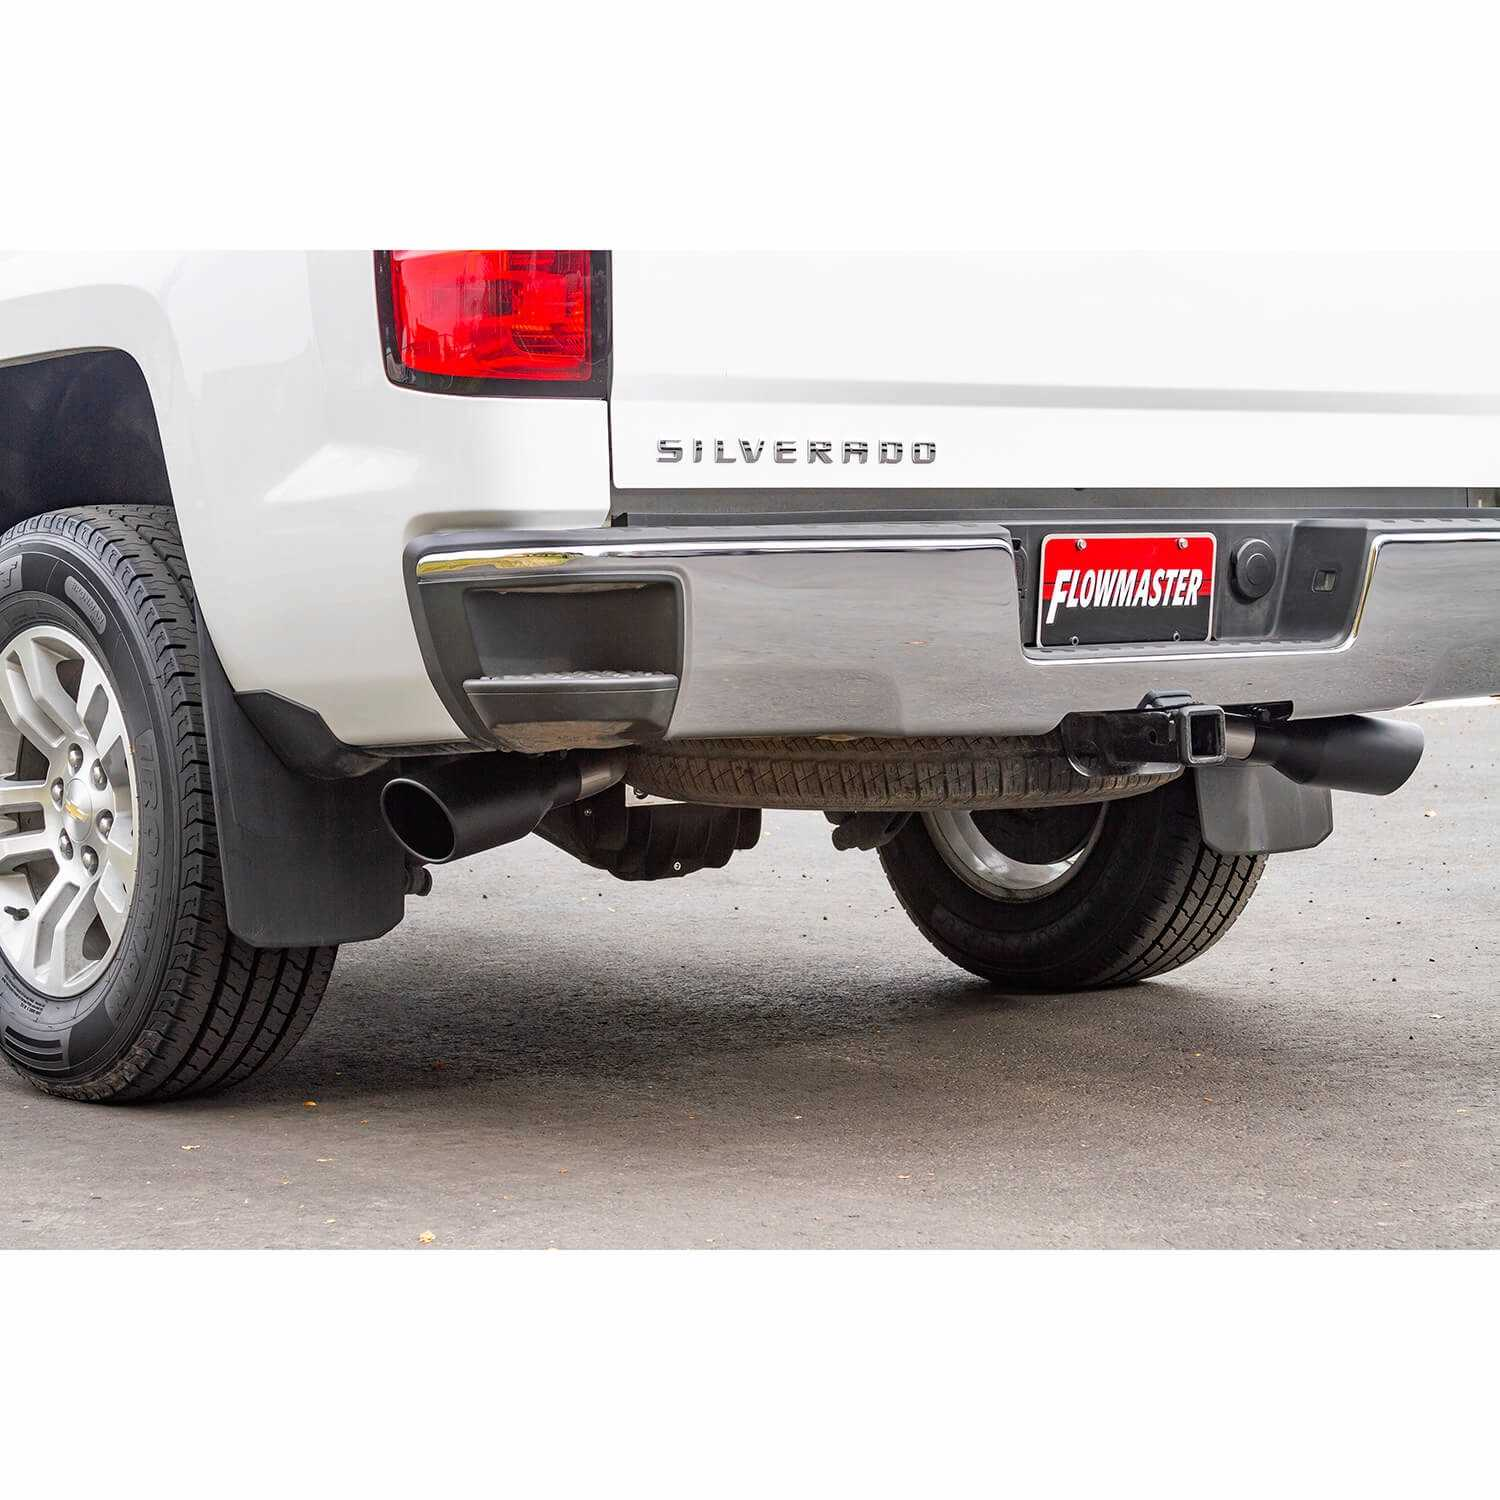 717869 Flowmaster FlowFX Cat-Back Exhaust System